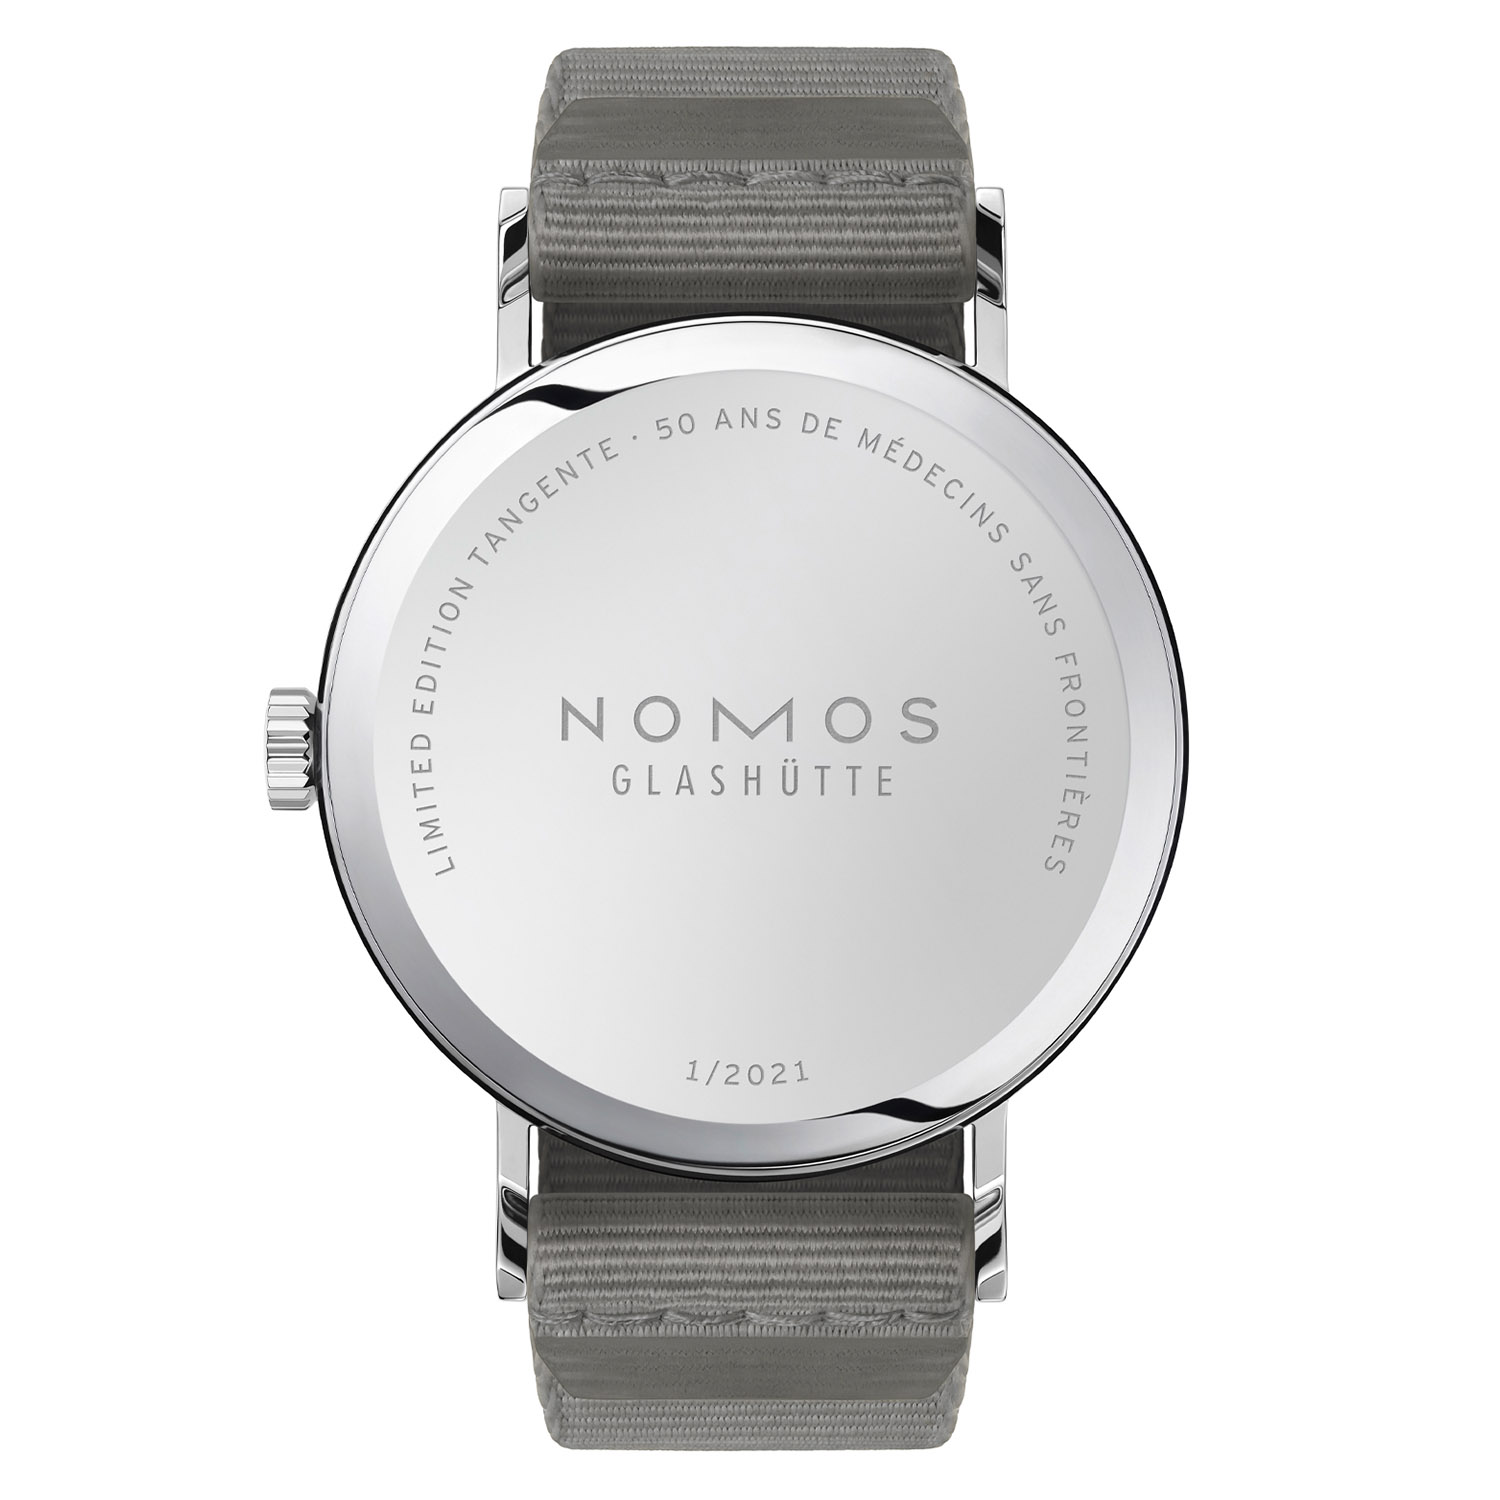 Nomos Tangente 38 MSF - 50 years of Doctors Without Borders